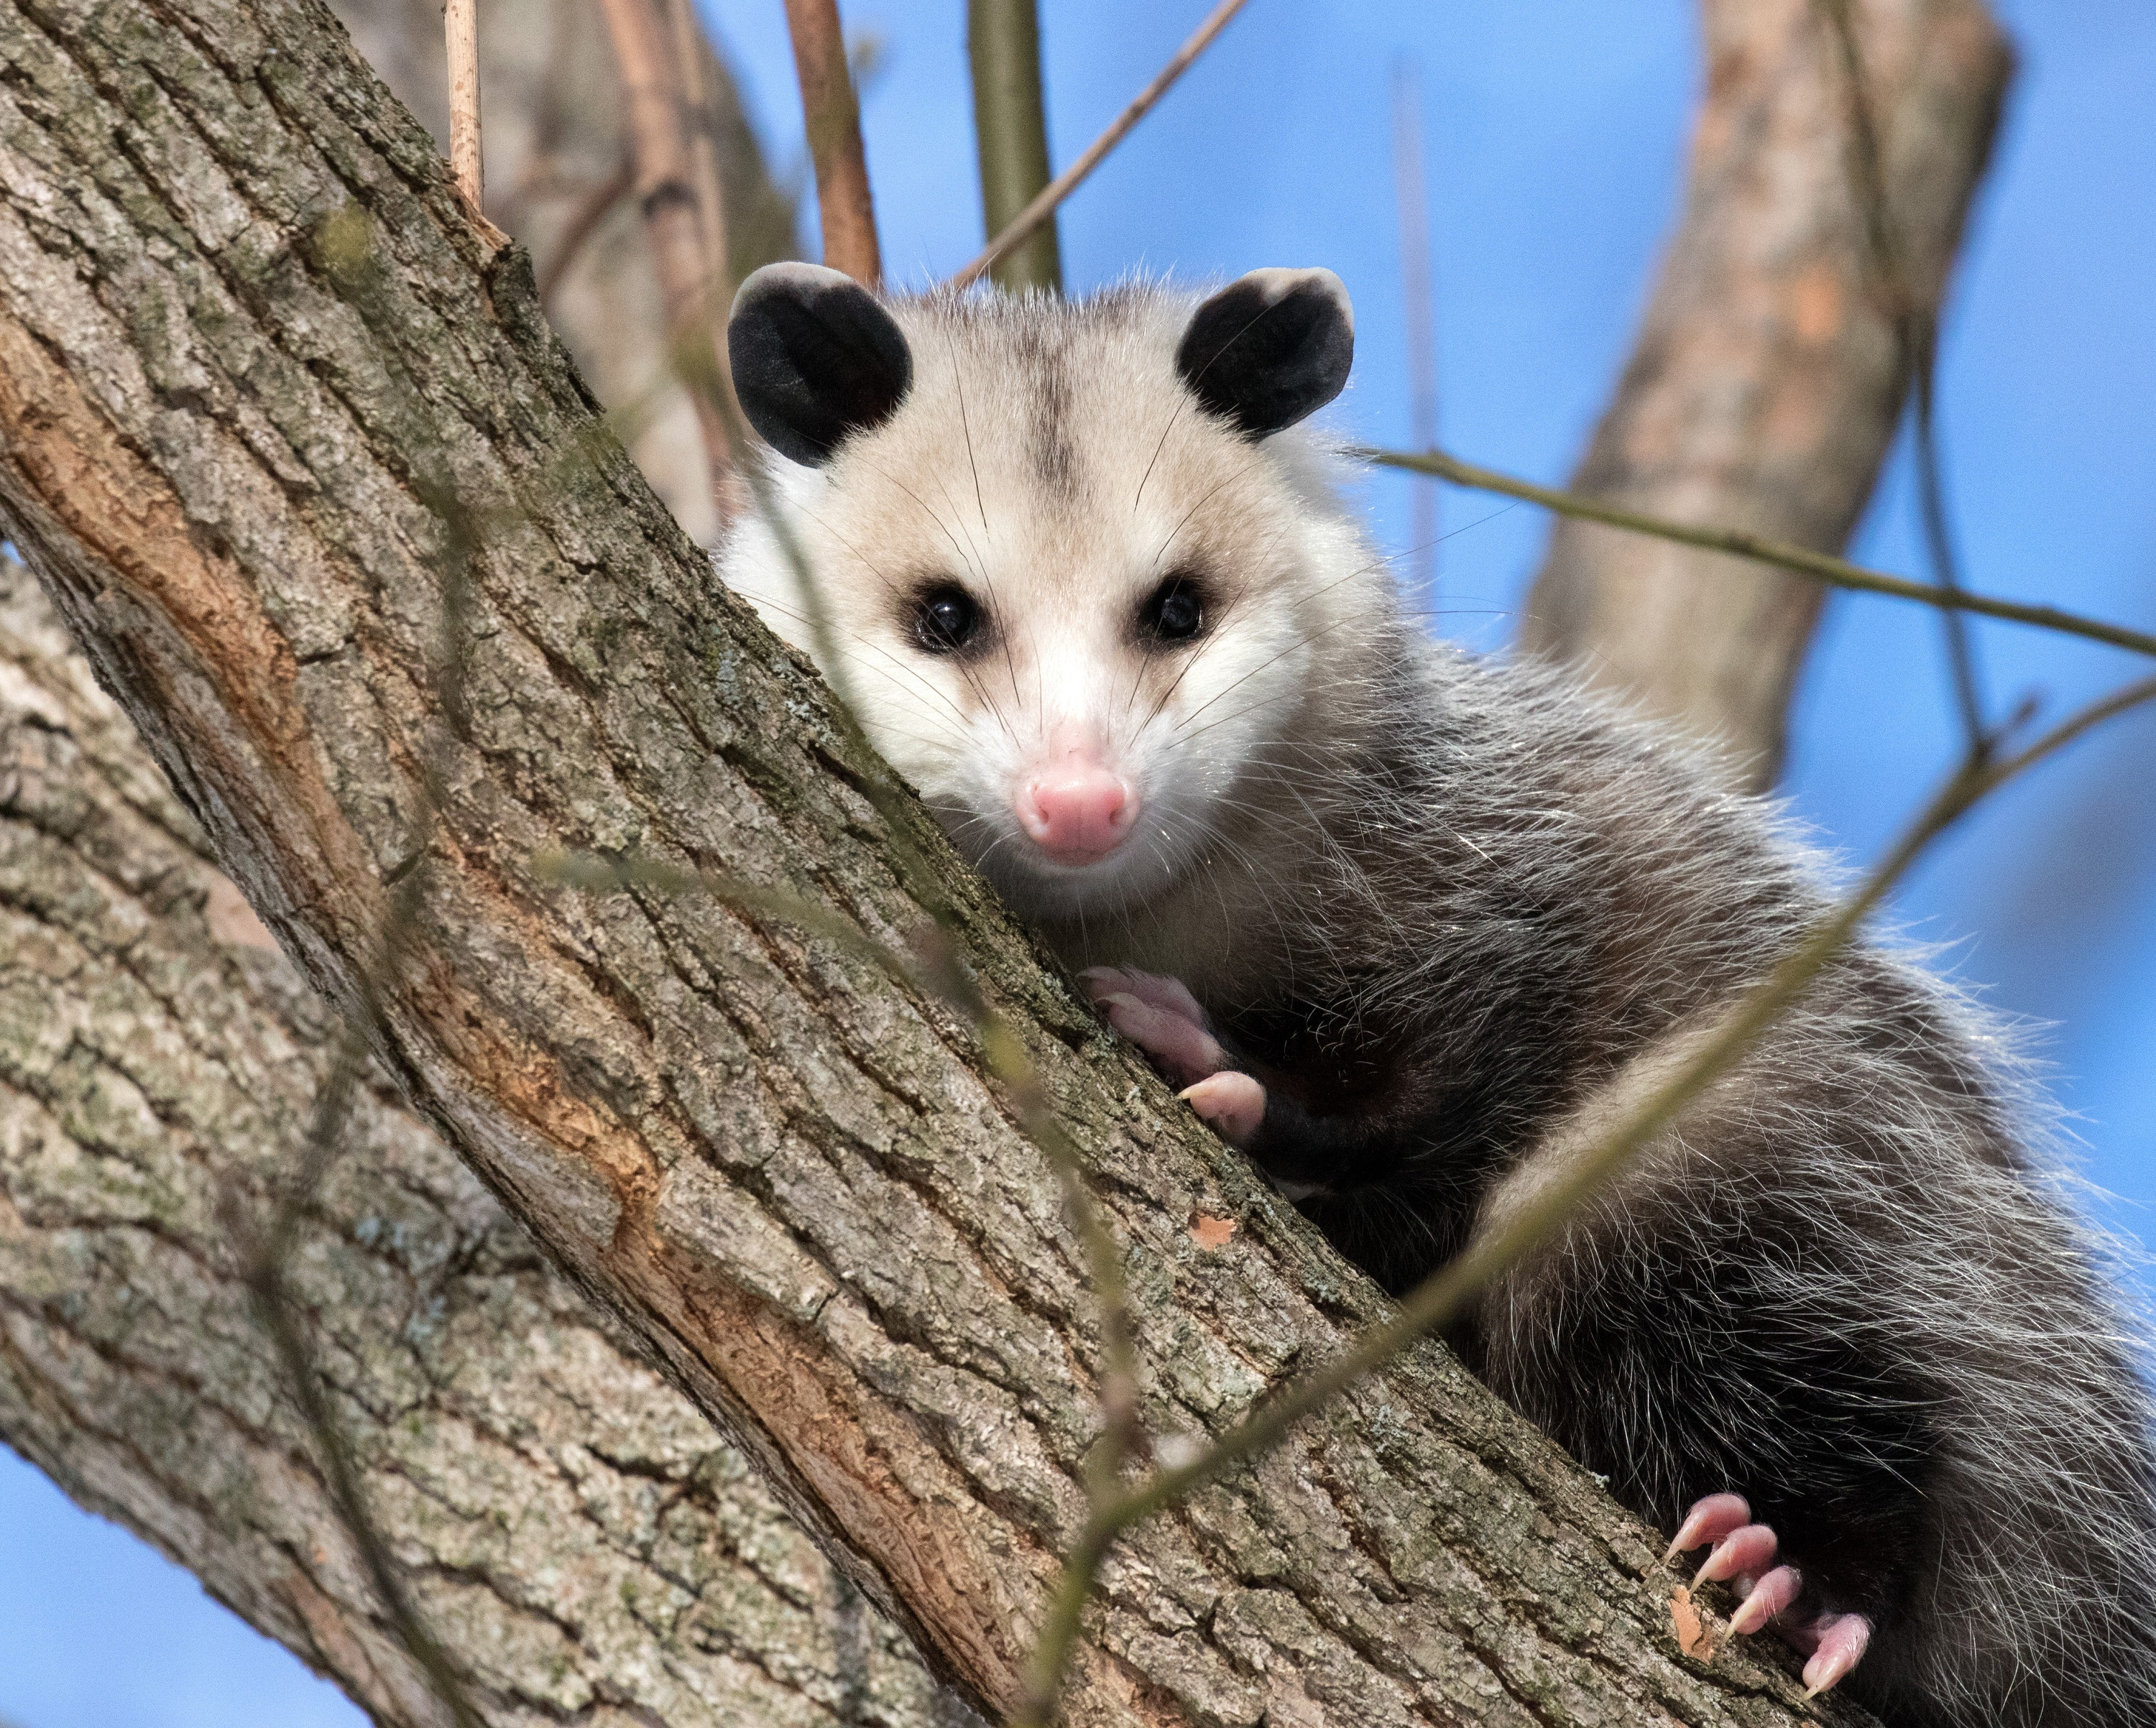 Weird & Wonderful Wildlife - The Opossum | Cornell Wildlife